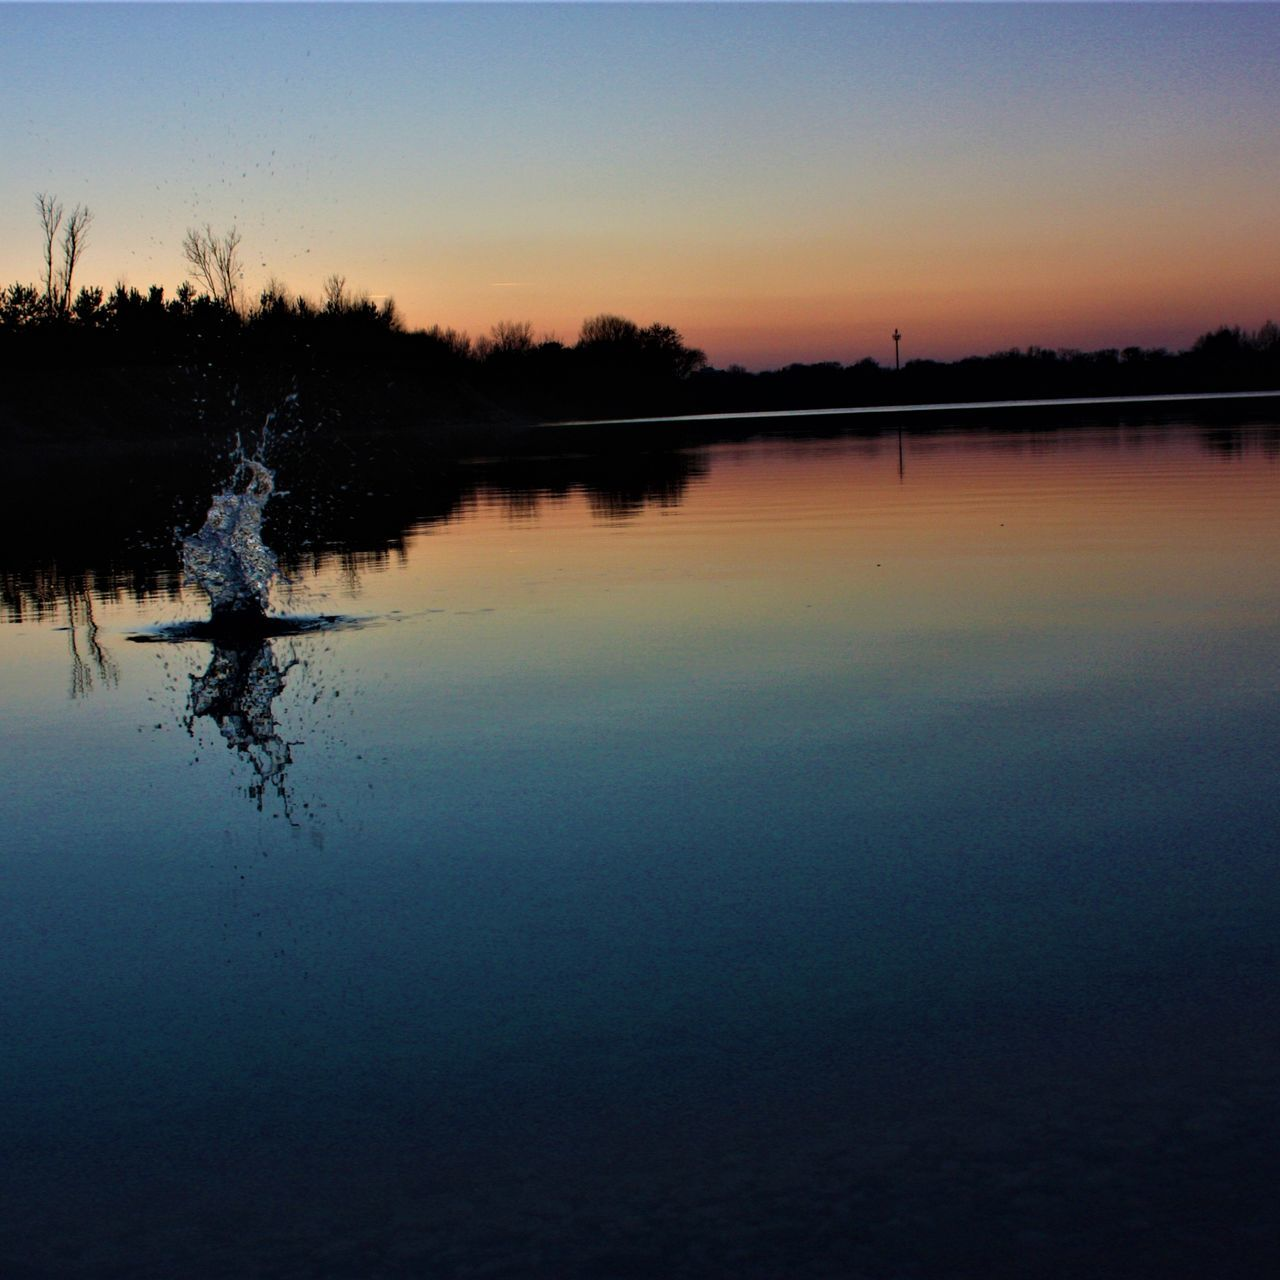 sunset, reflection, water, silhouette, nature, beauty in nature, tranquil scene, tree, lake, scenics, outdoors, tranquility, waterfront, sky, no people, clear sky, day